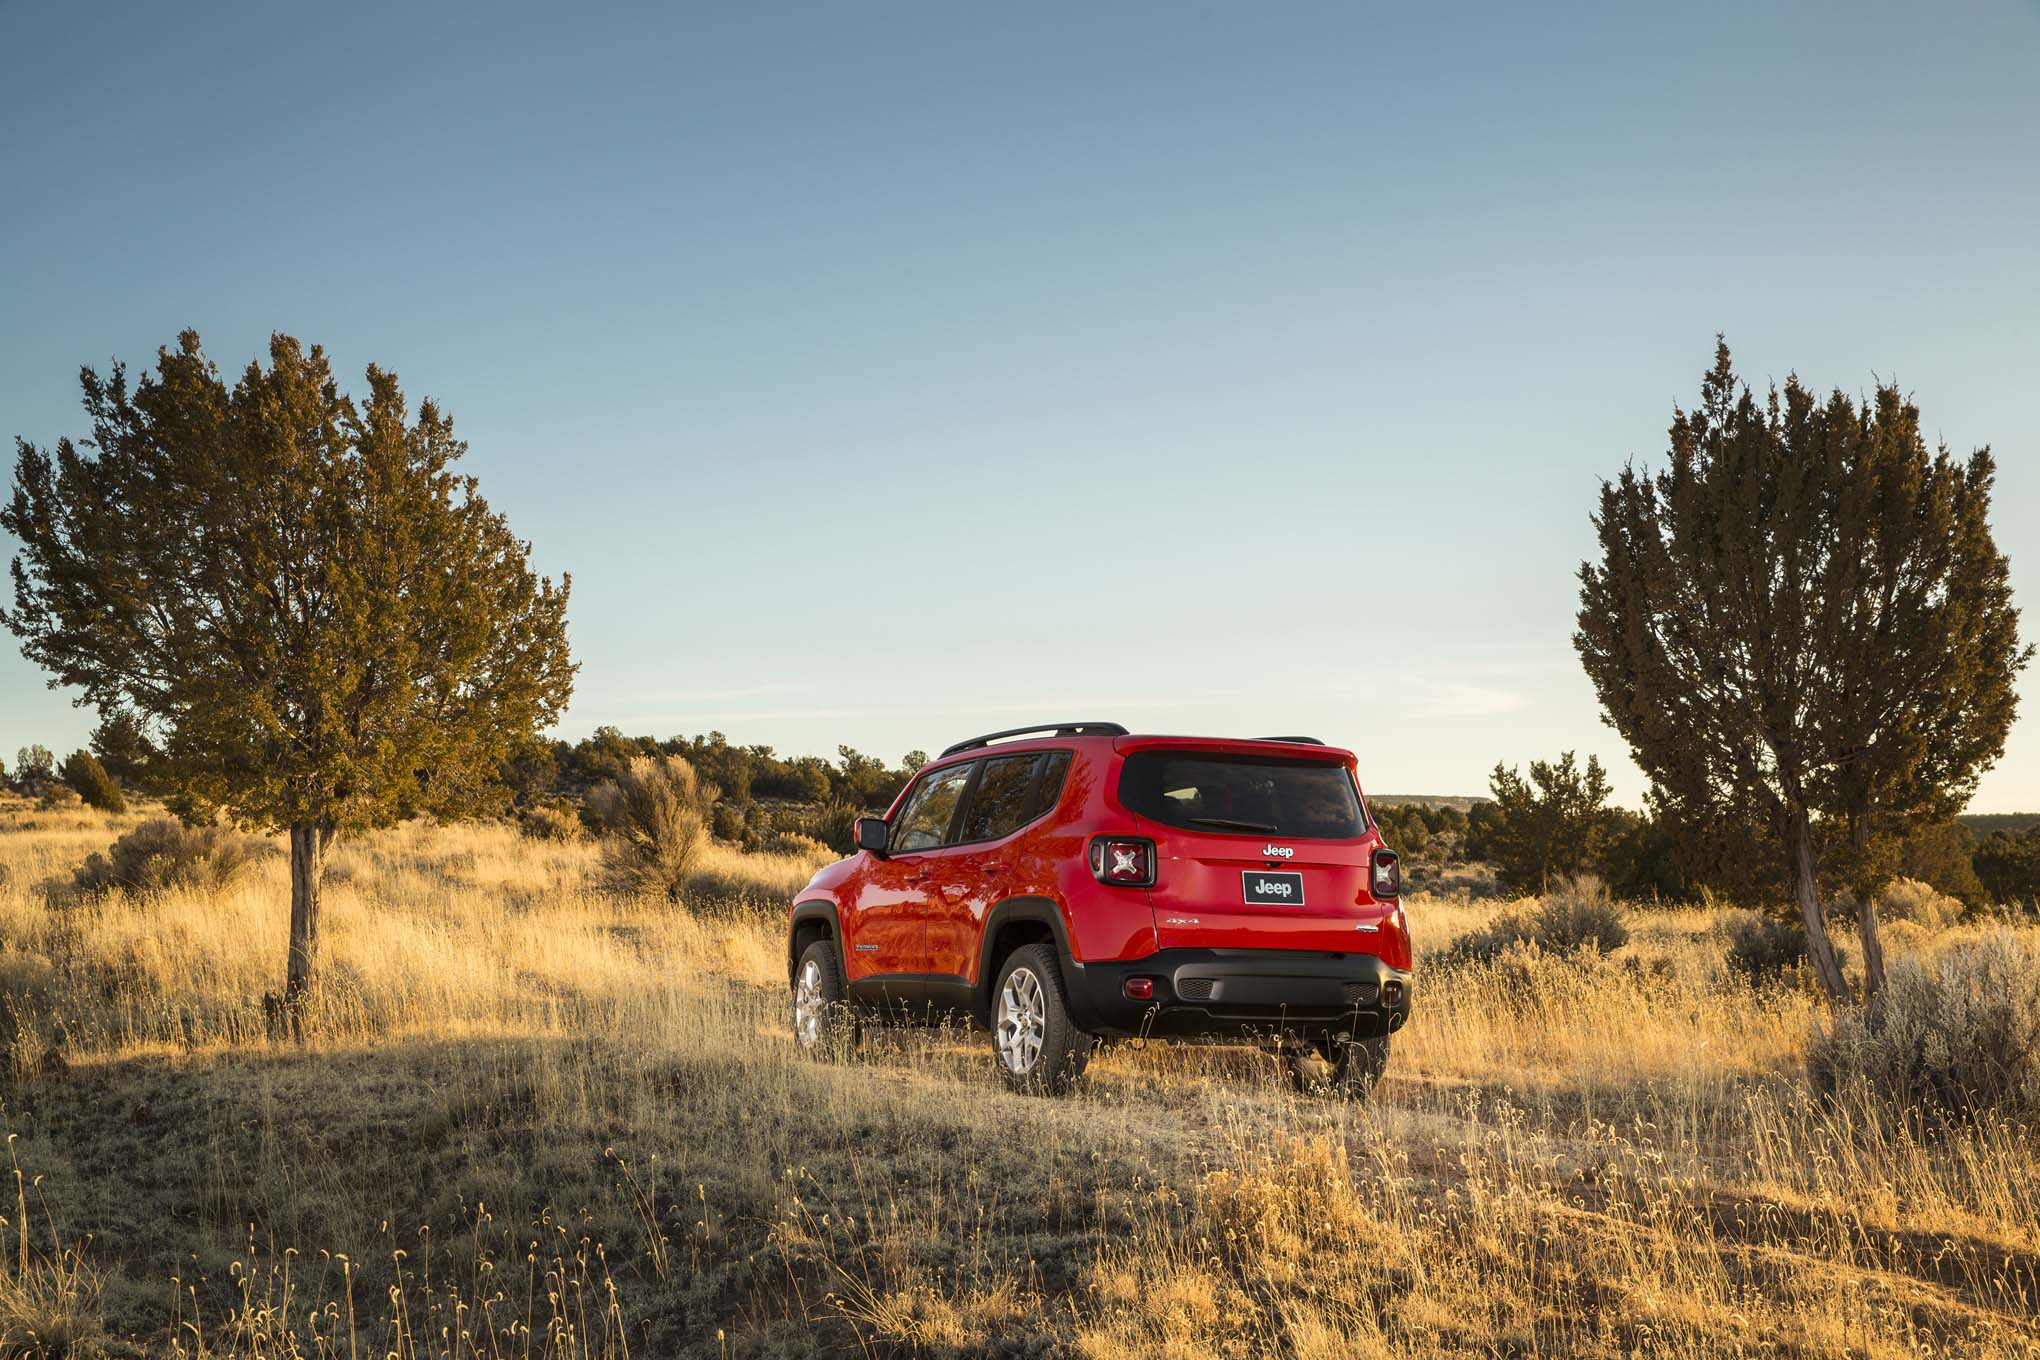 2015 Jeep Renegade Latitude rear three quarters